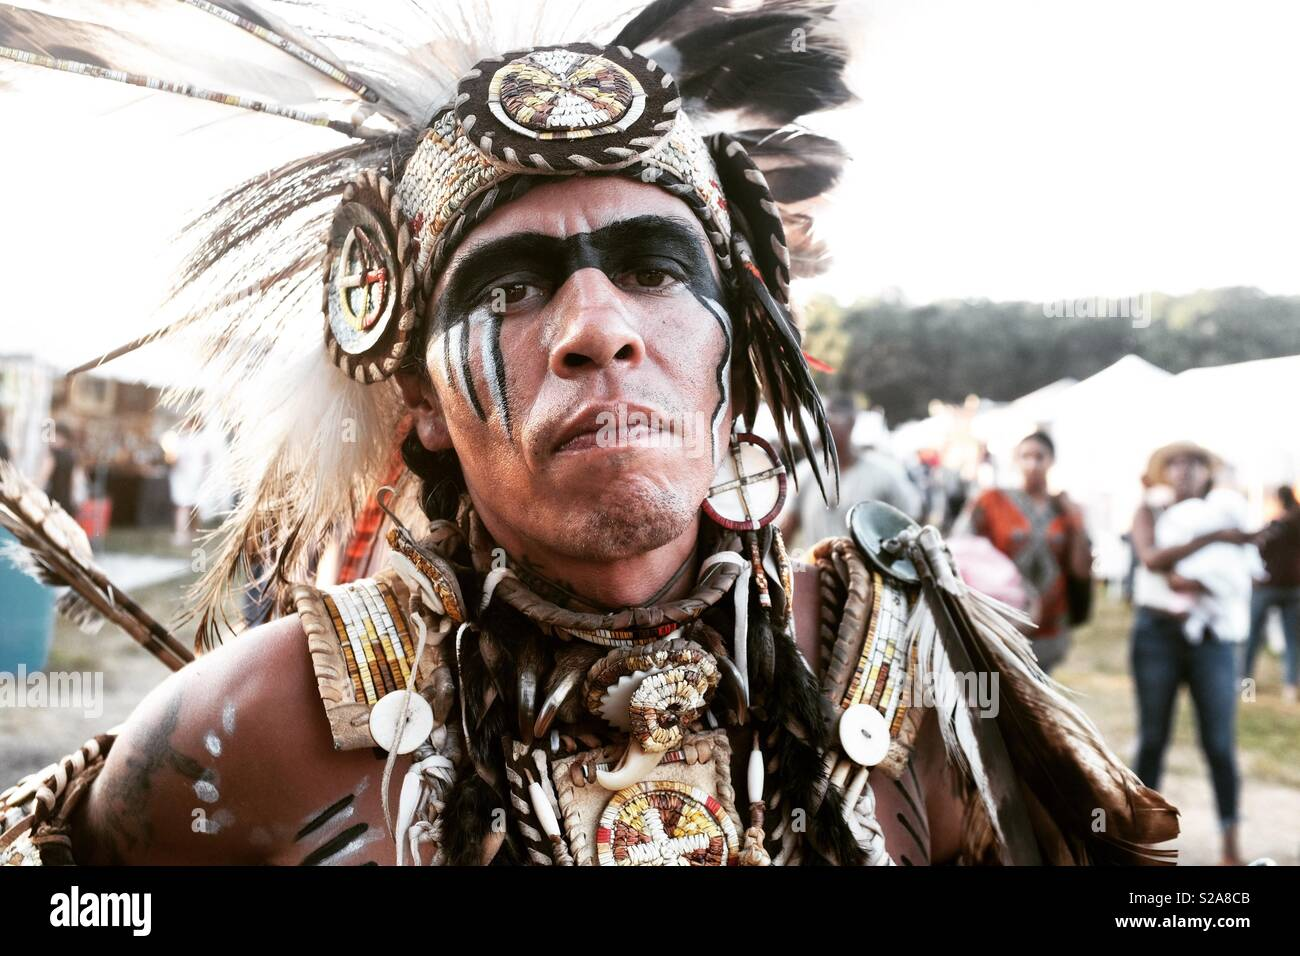 A Native American chieftain at the Shinnecock Pow Wow. - Stock Image